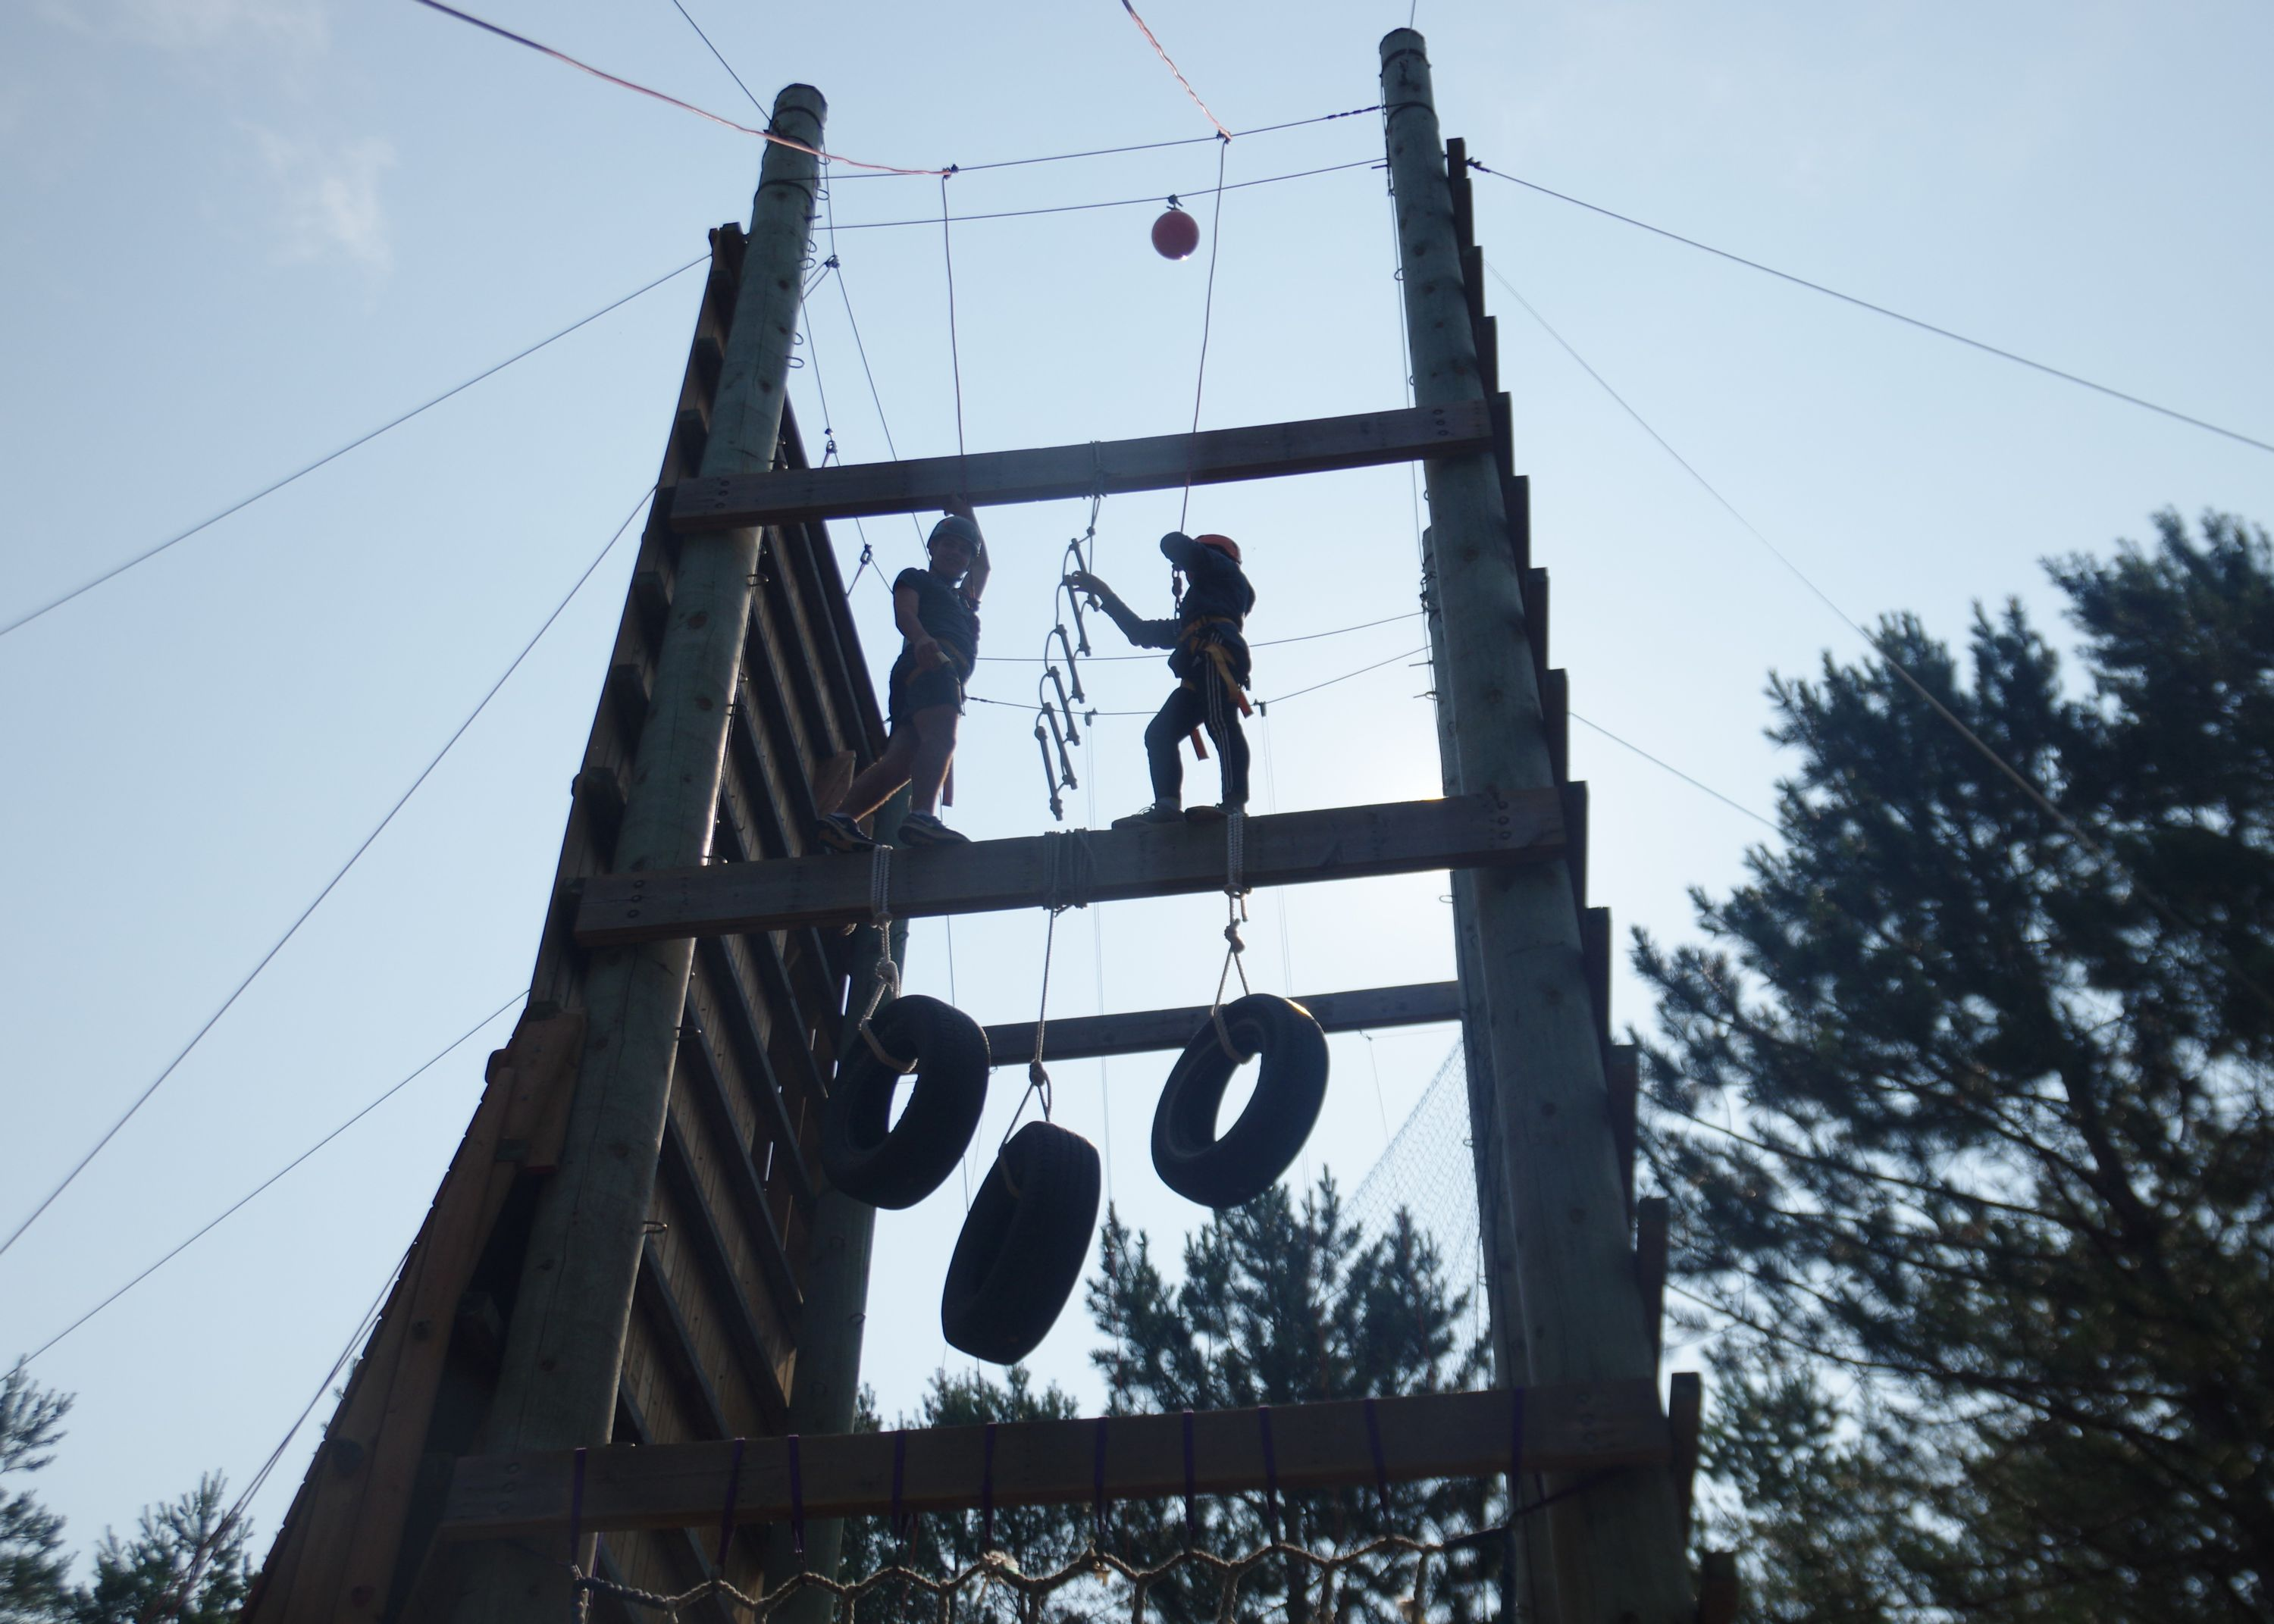 Campers doing Jacob's Ladder Verticle Team Challenge at christian adventure summer camp in Haliburton, Ontario